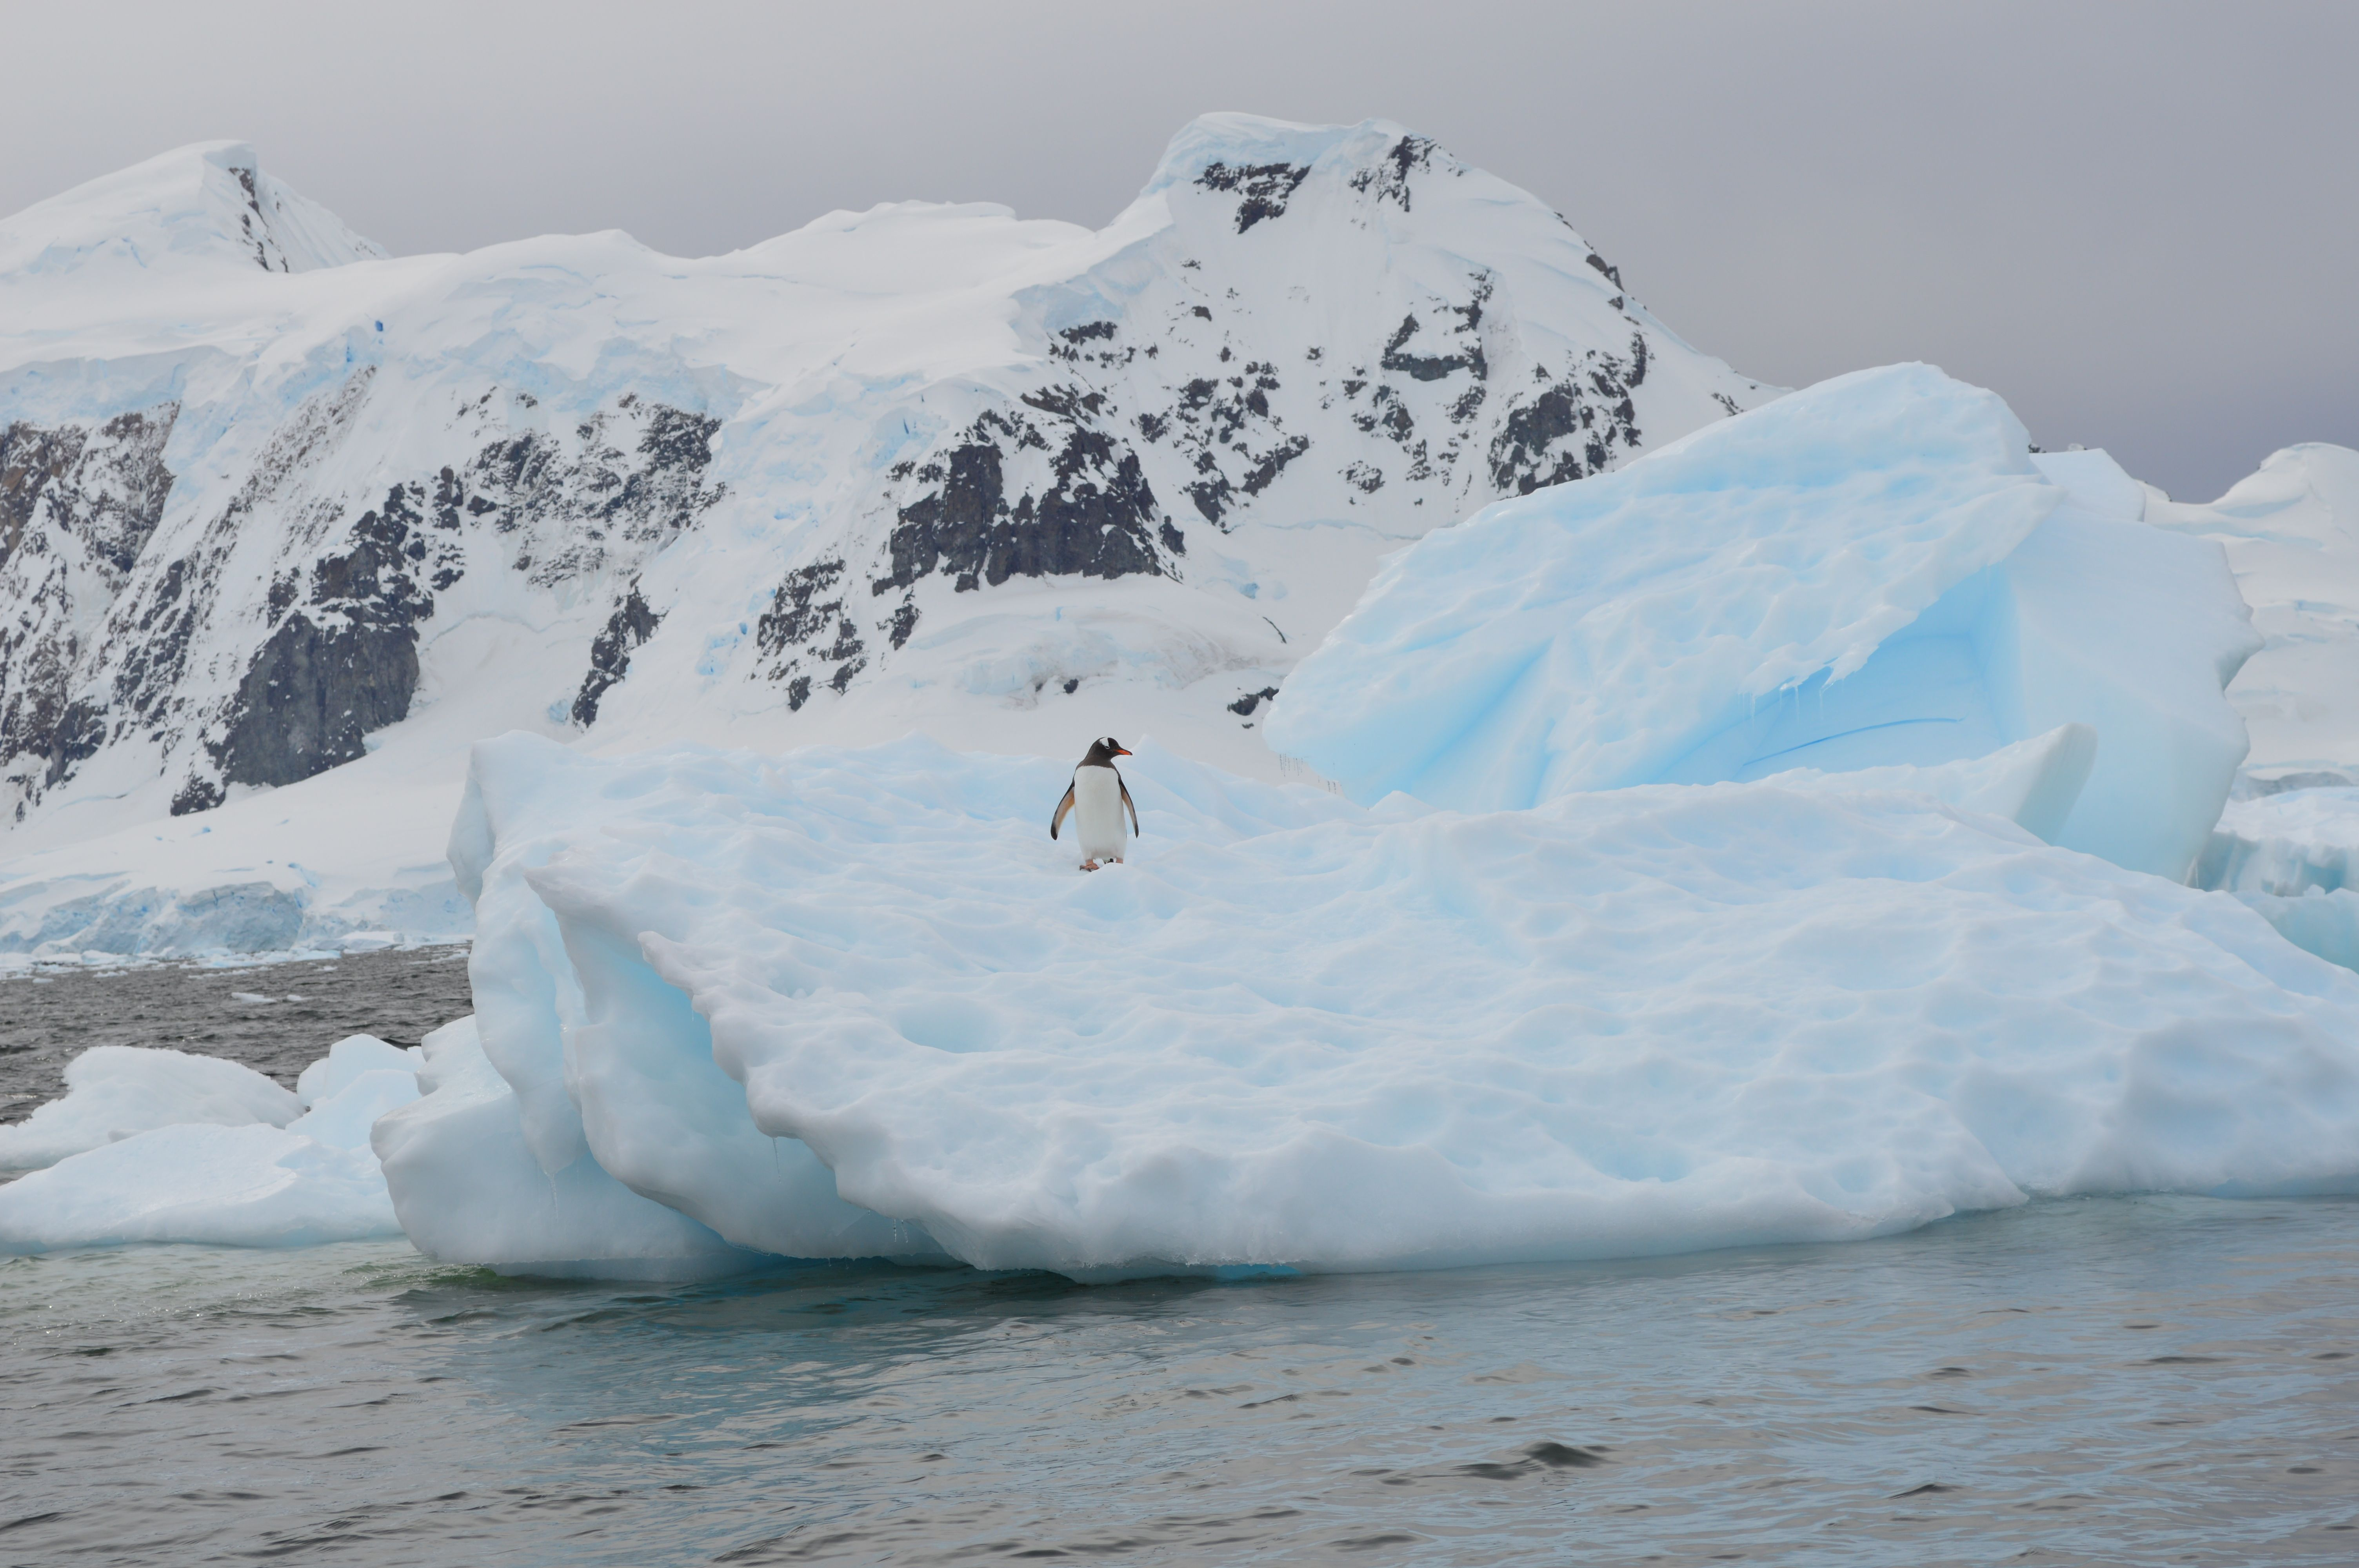 Gentoo Penguin on Antarctica iceberg, The Citadel